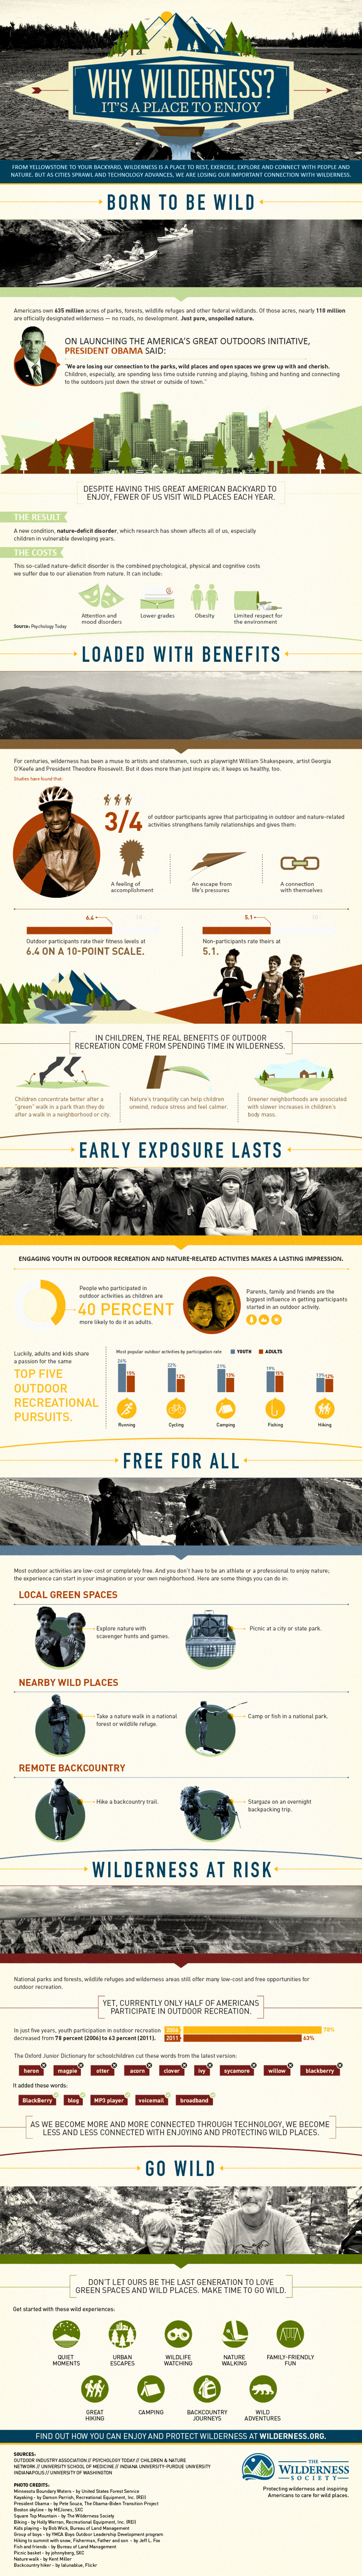 Why Does Wilderness Matter? Infographic